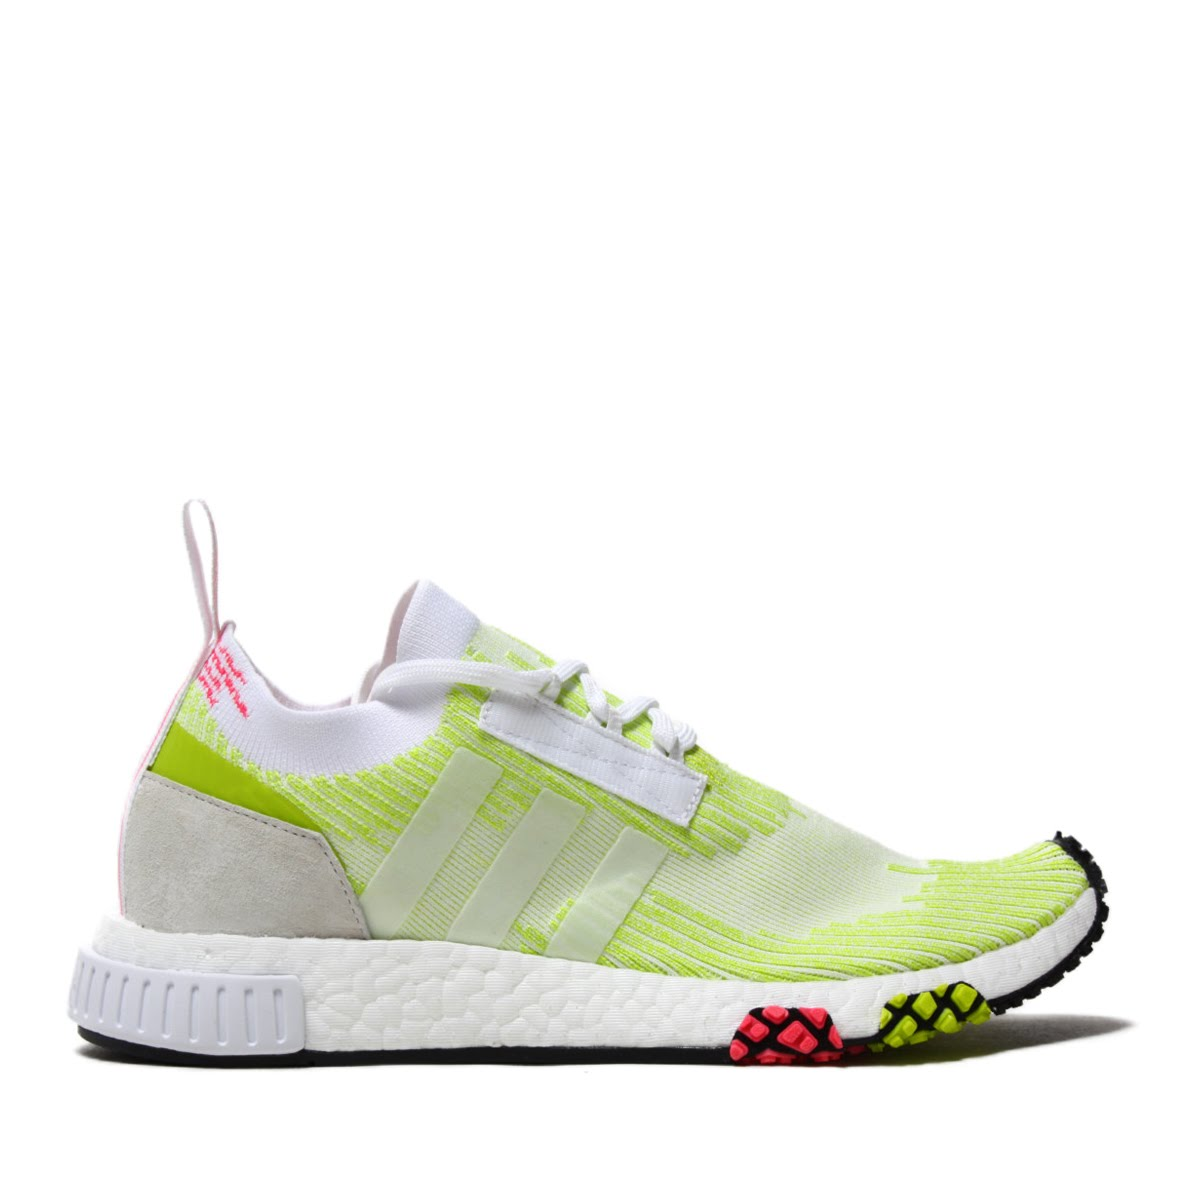 a28cad5c2aaa4 adidas Originals NMD RACER PK W (Adidas originals N M D racer PKW) SEMI  SOLAR YELLOW SEMI SOLAR YELLOW RUNNING WHITE 18FA-I